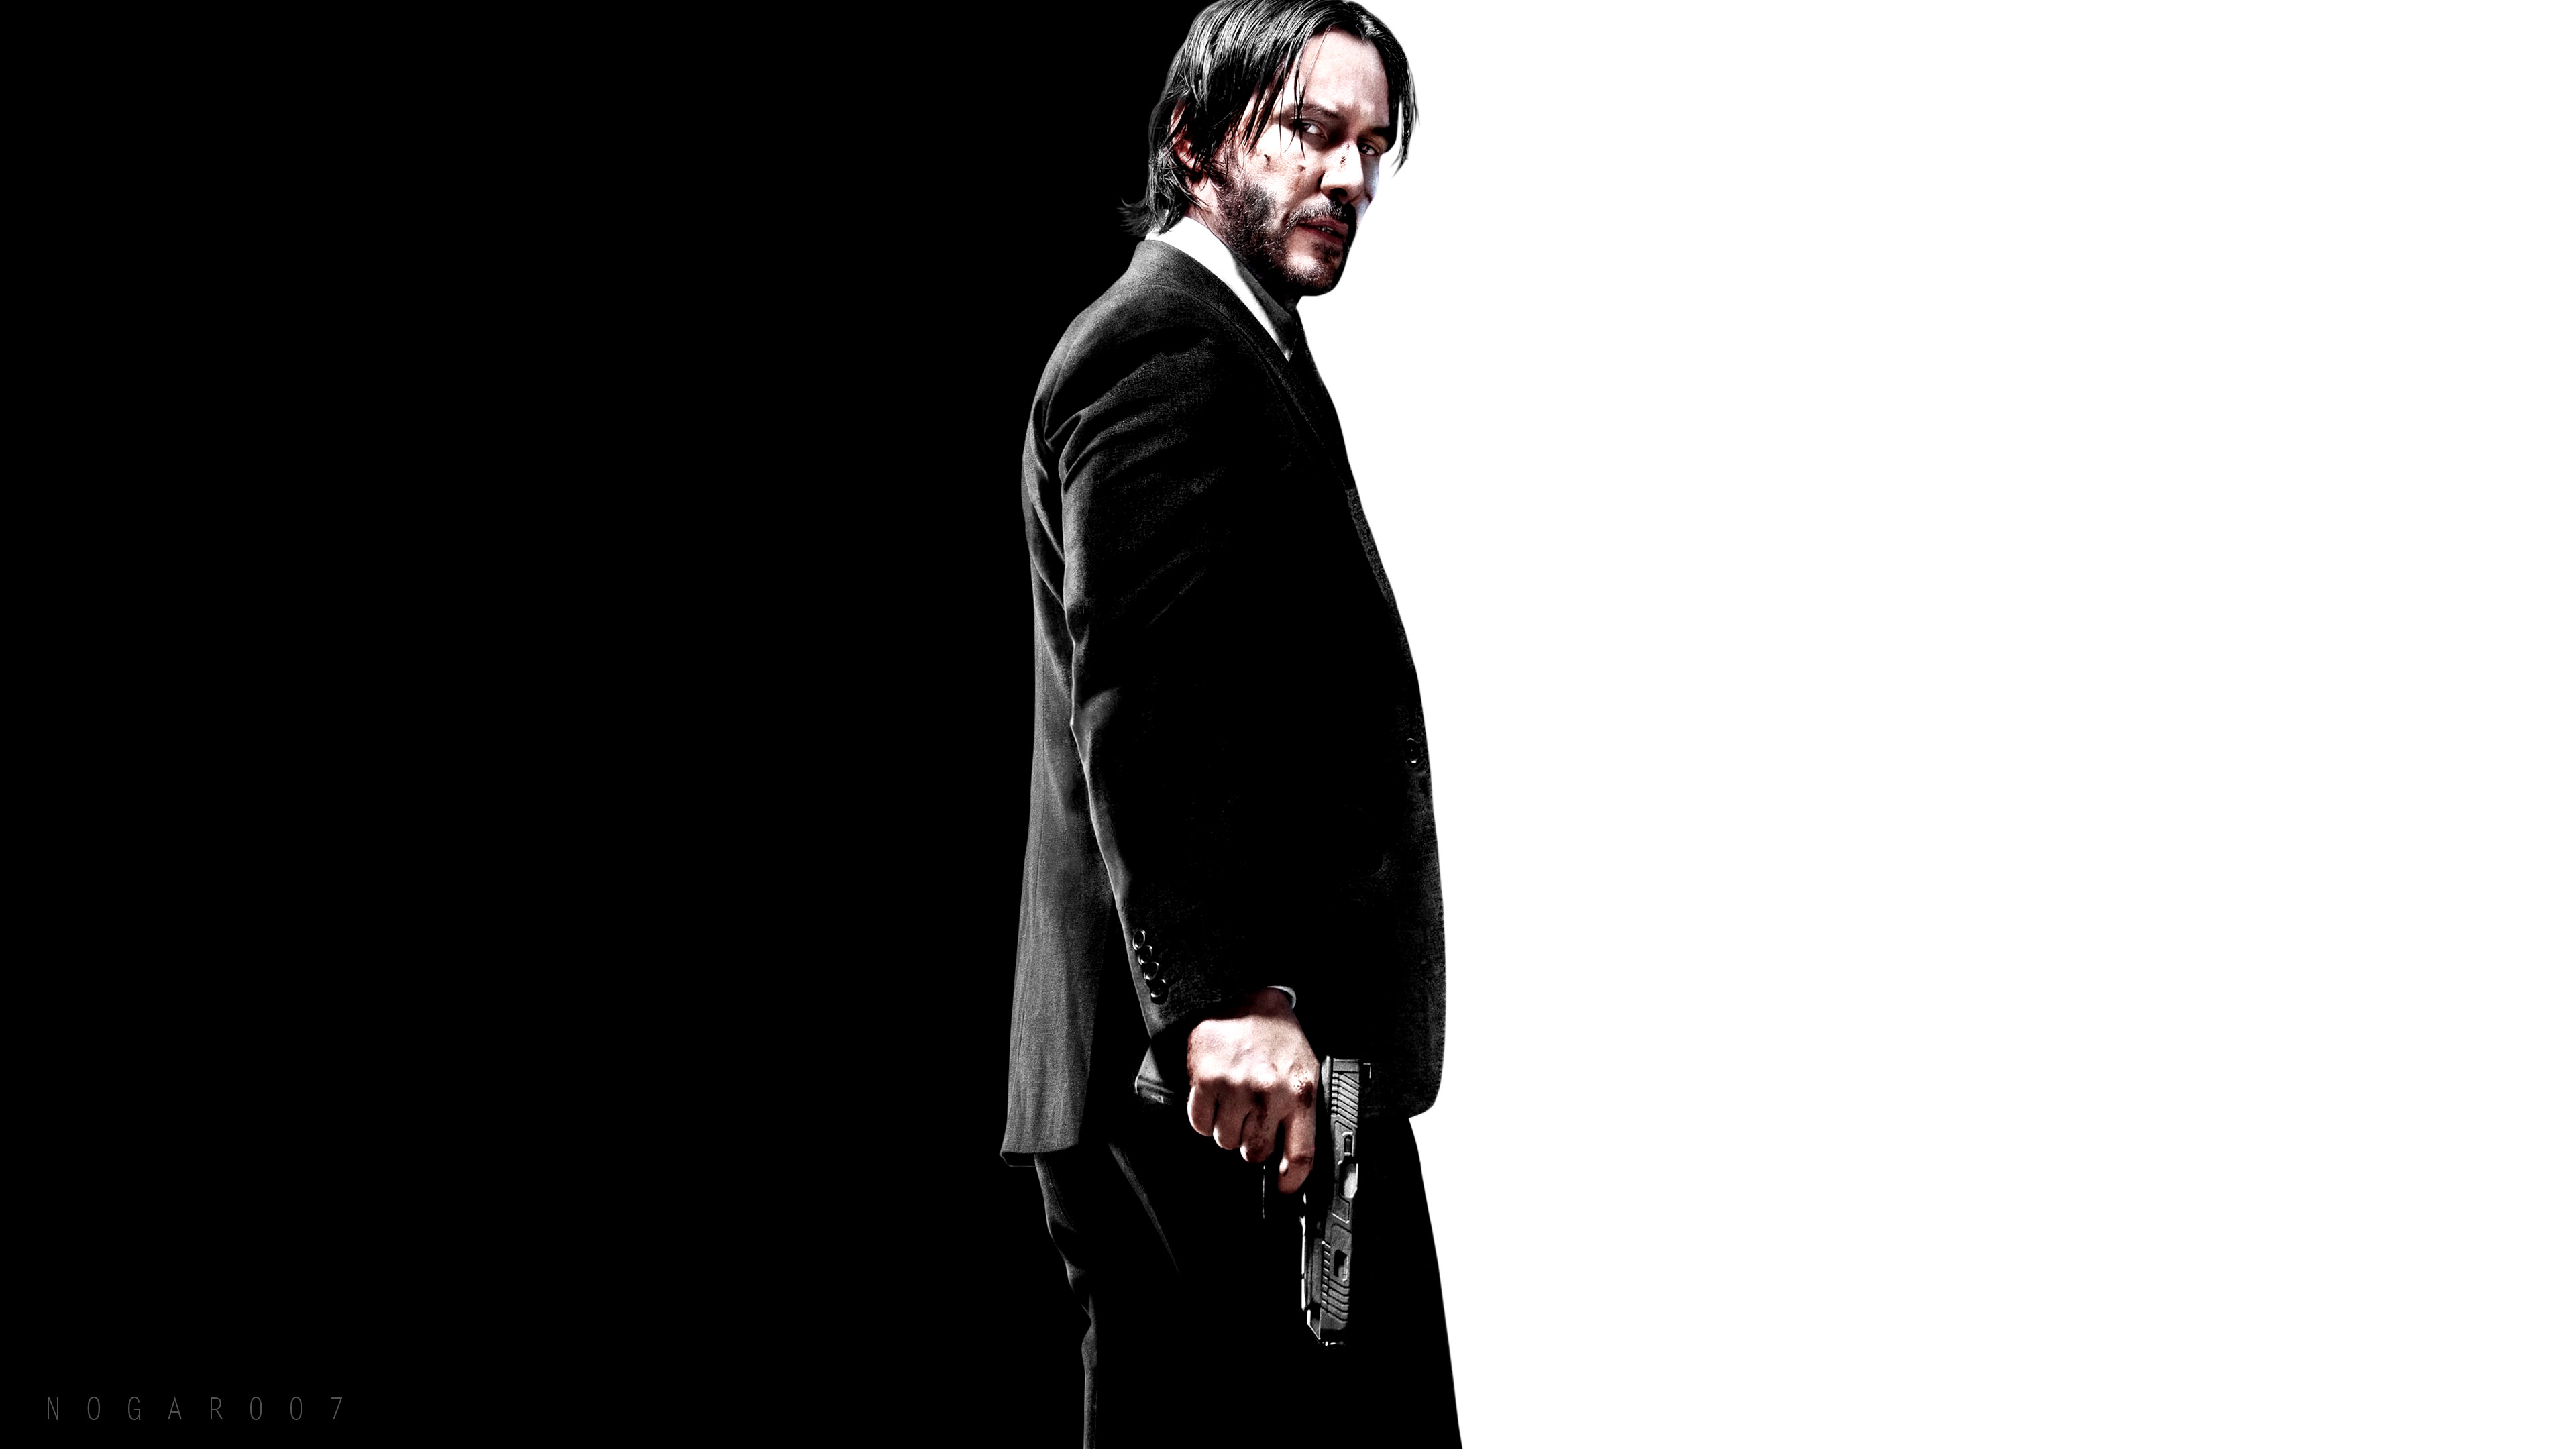 John Wick [3840x2160] Amoledbackgrounds 3840x2160